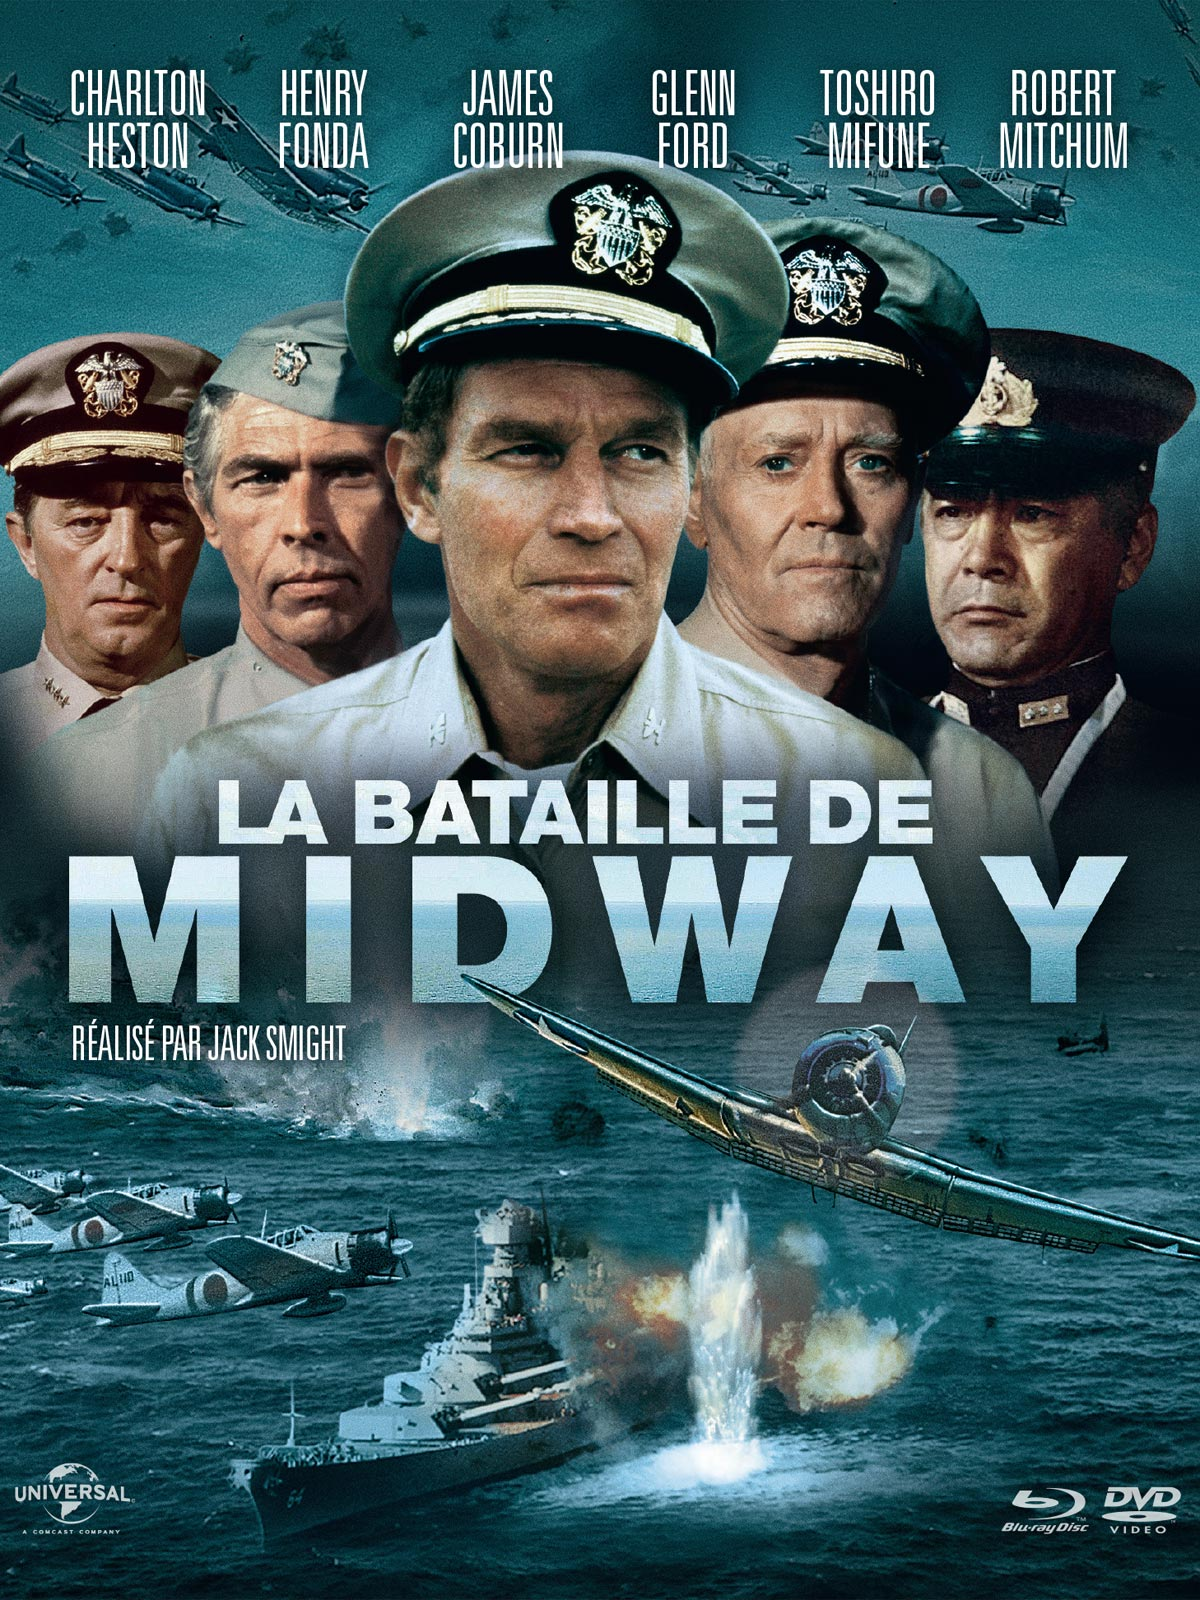 Des Films En Streaming La Bataille De Midway Film Streaming